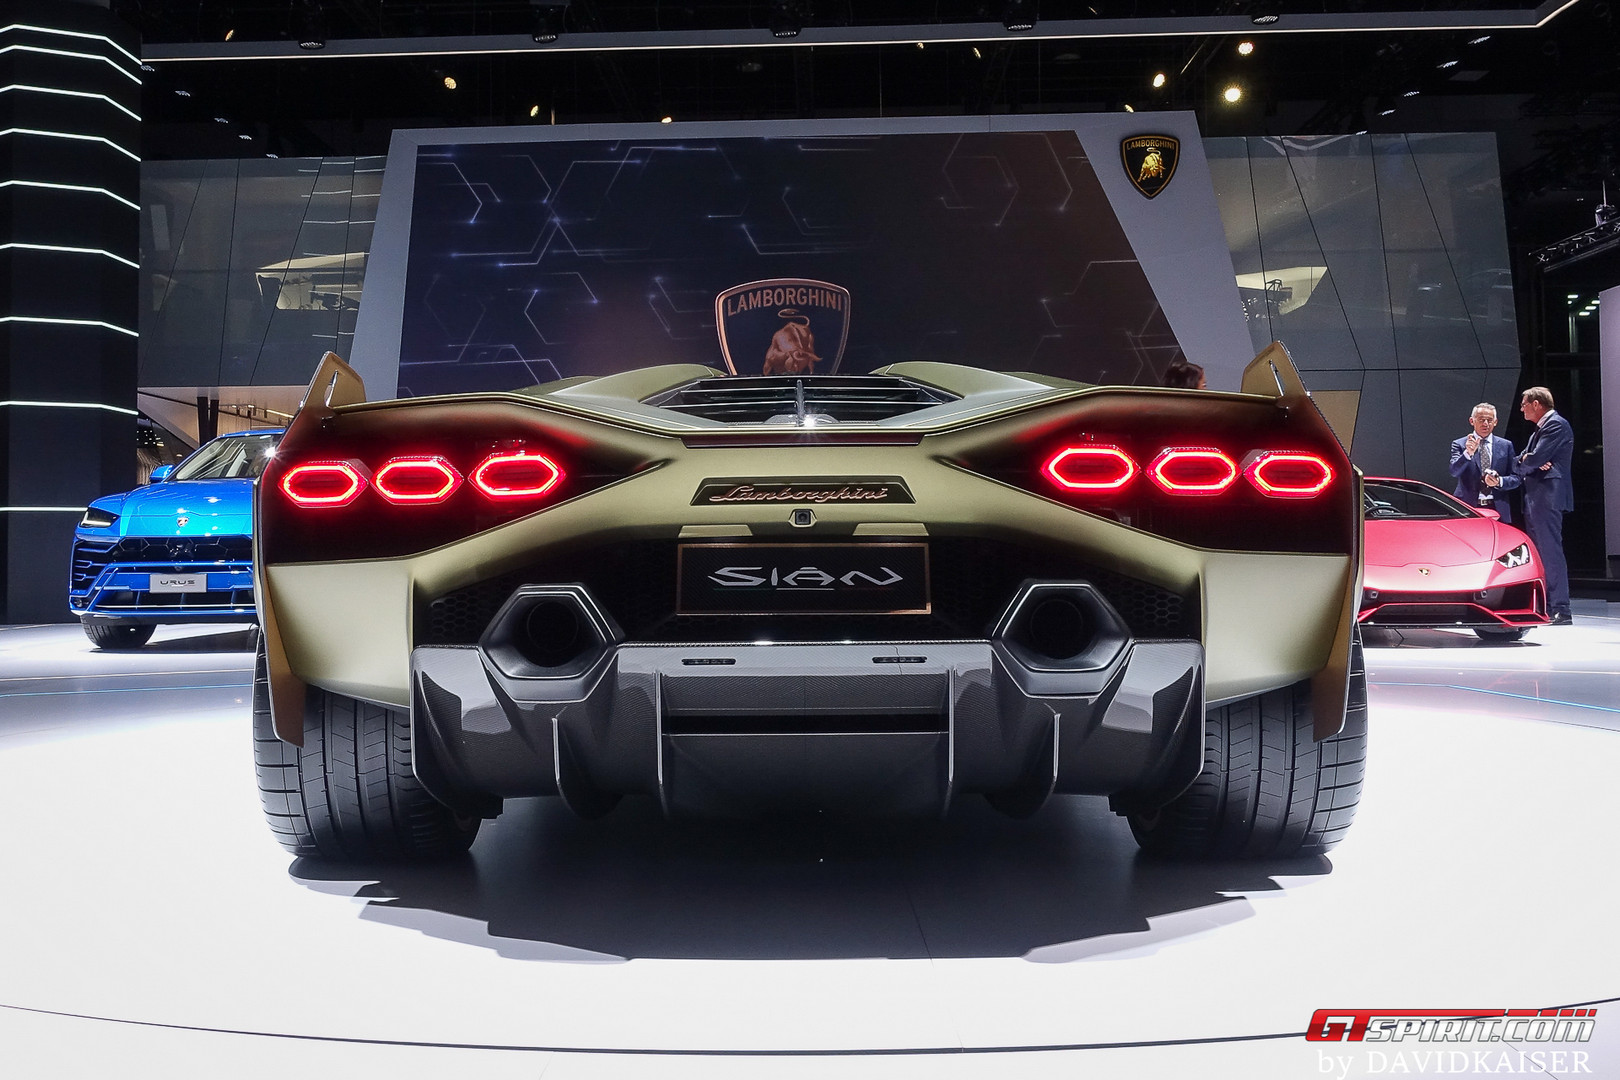 Lamborghini Sian Rear View